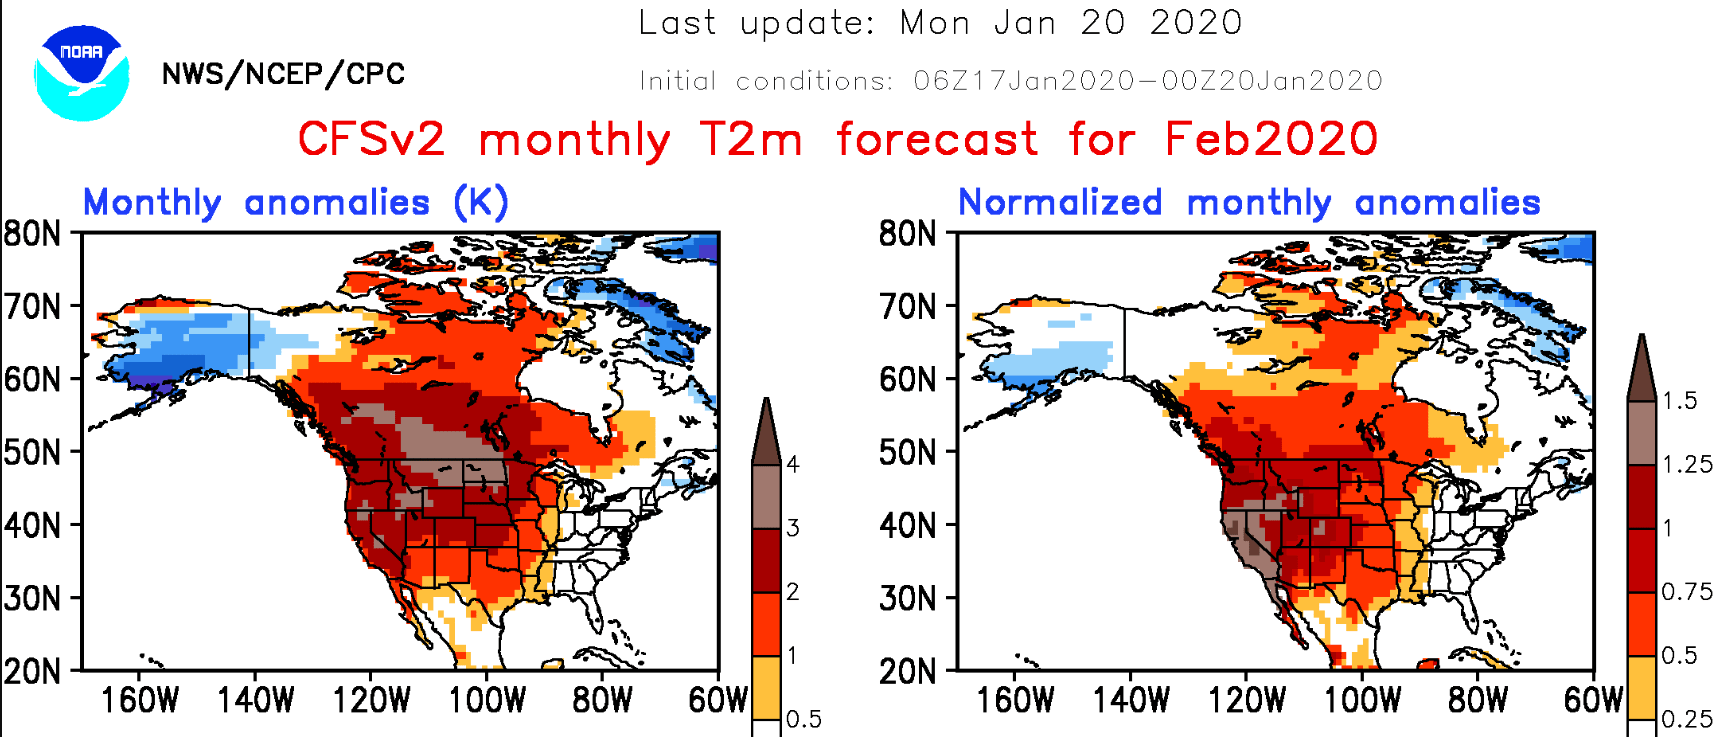 NOAA CFS2 temperature outlook for February 2020